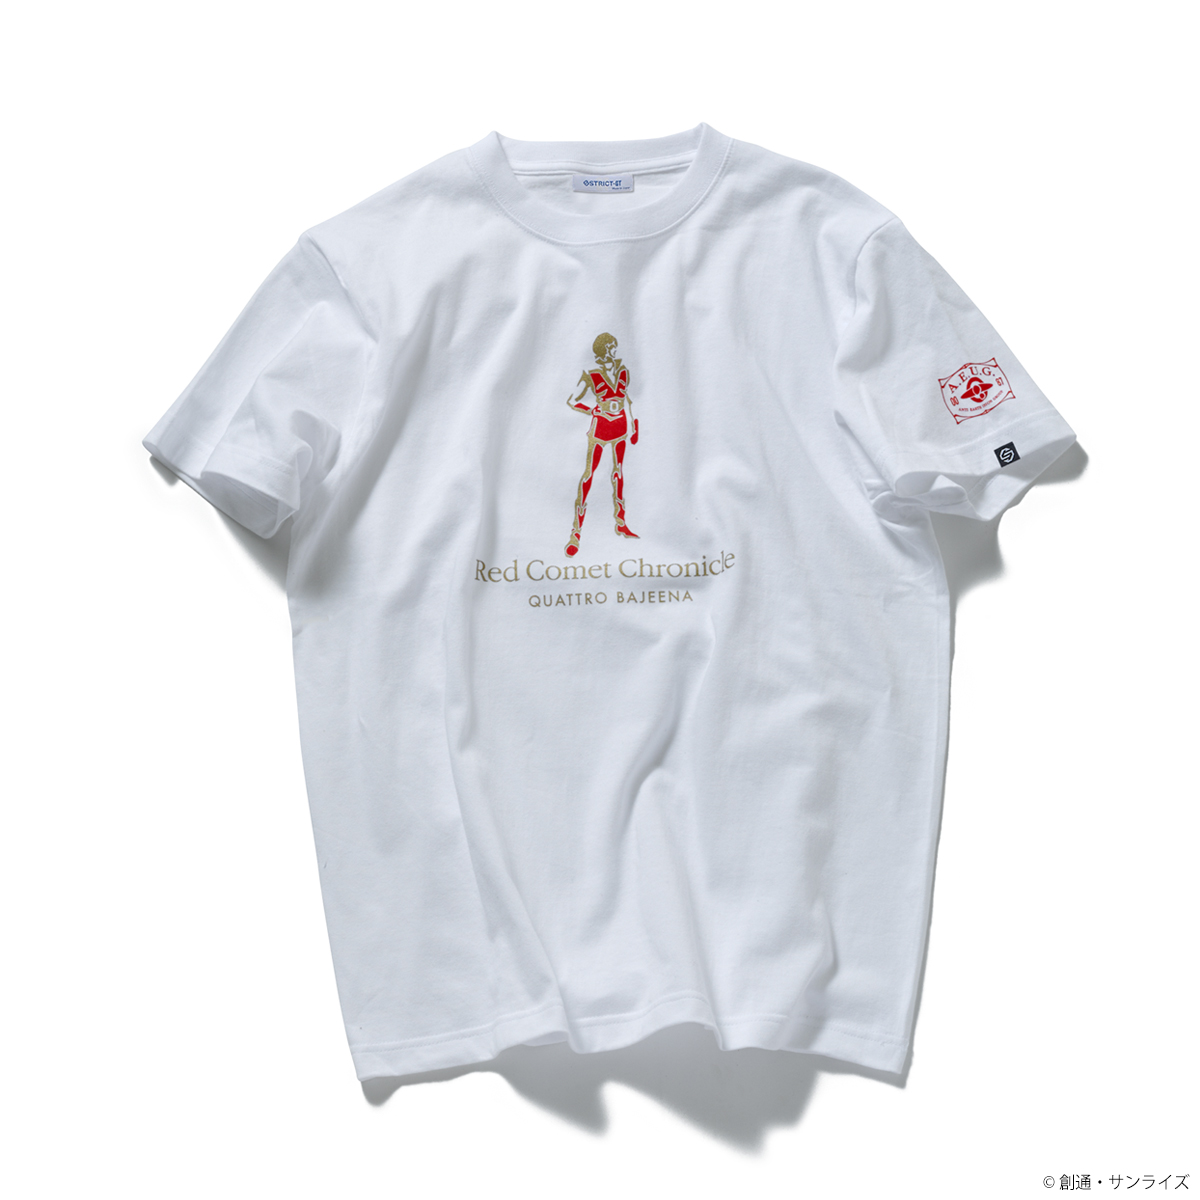 STRICT-G『機動戦士Zガンダム』Red Comet Chronicle Tシャツ クワトロ・バジーナ